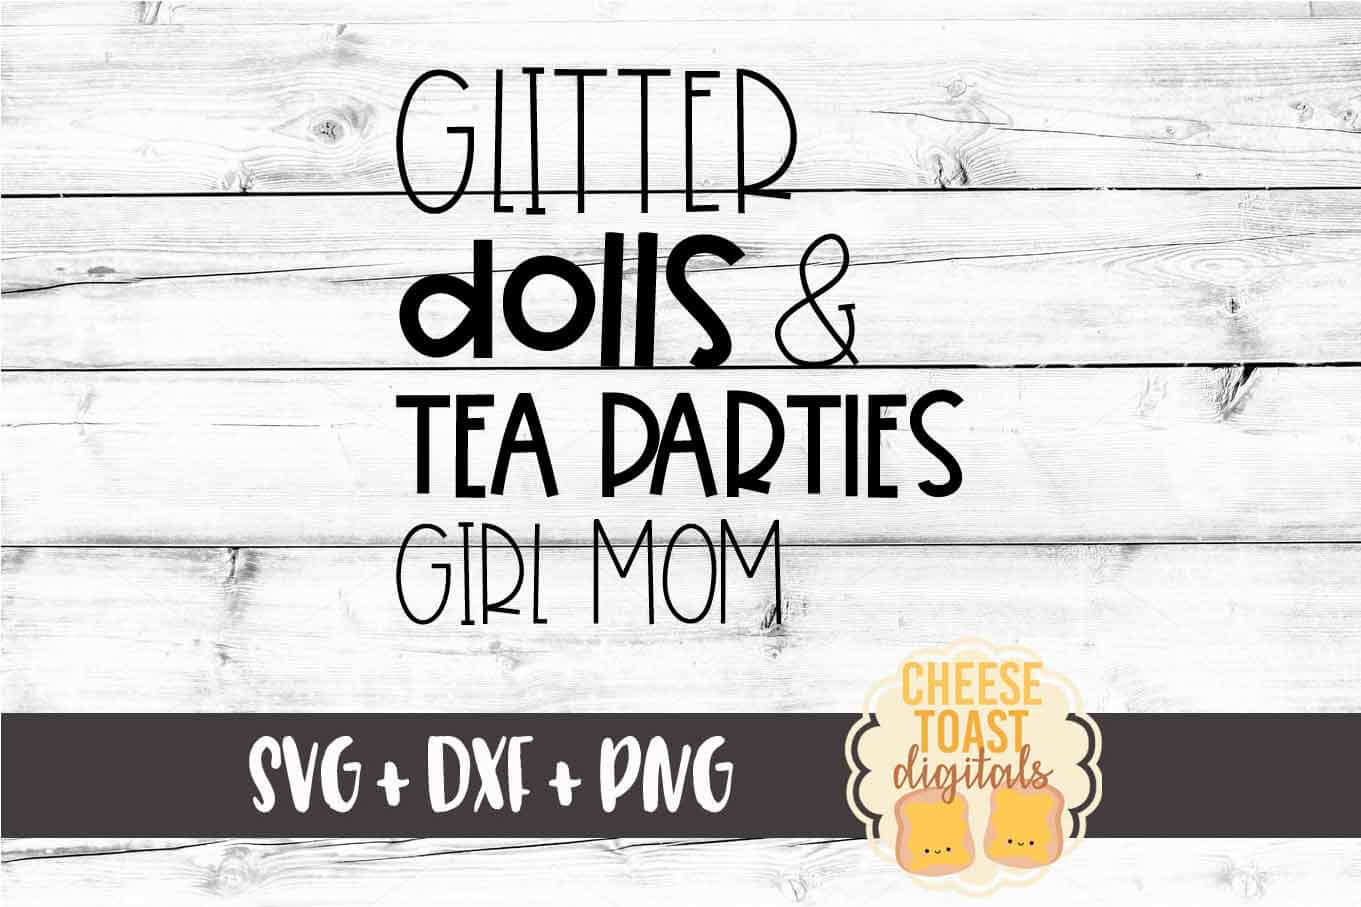 Glitter Dolls and Tea Parties Girl Mom - SVG PNG DXF Files example image 2